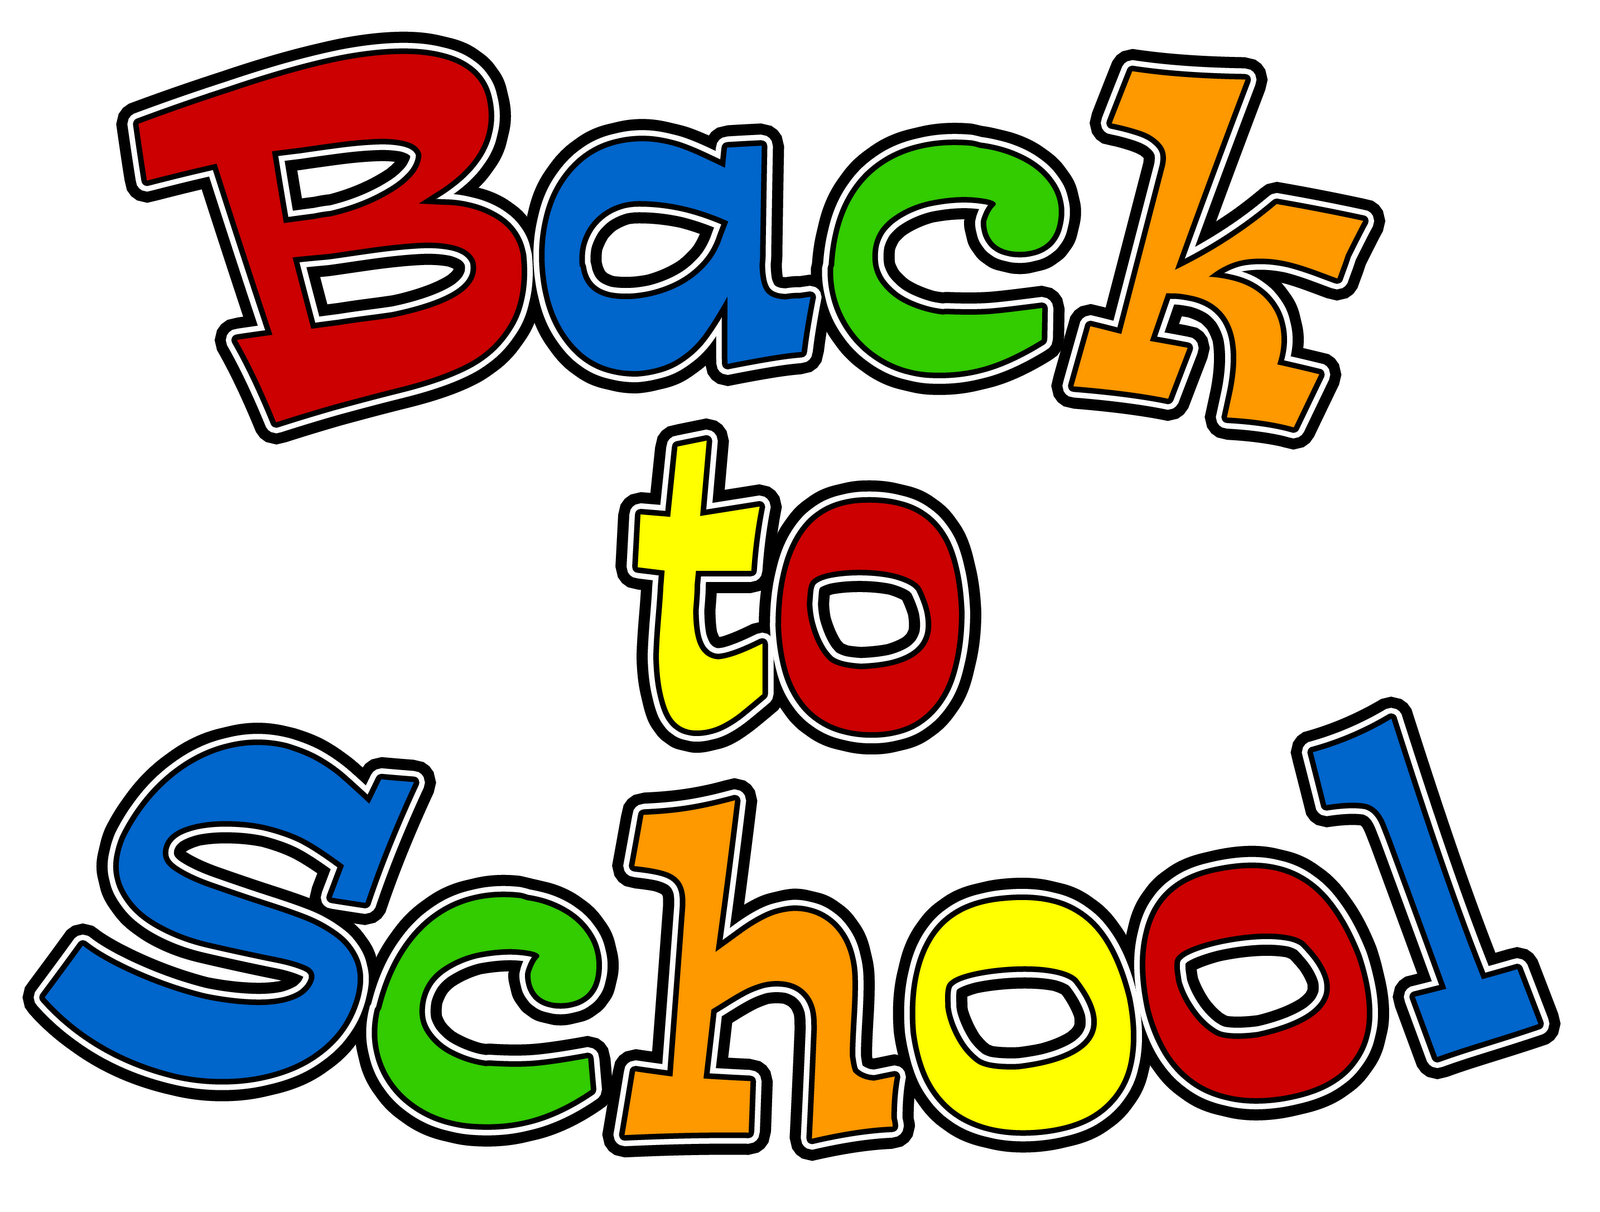 freeuse stock Back to school pikeview. Arcade clipart raffle basket